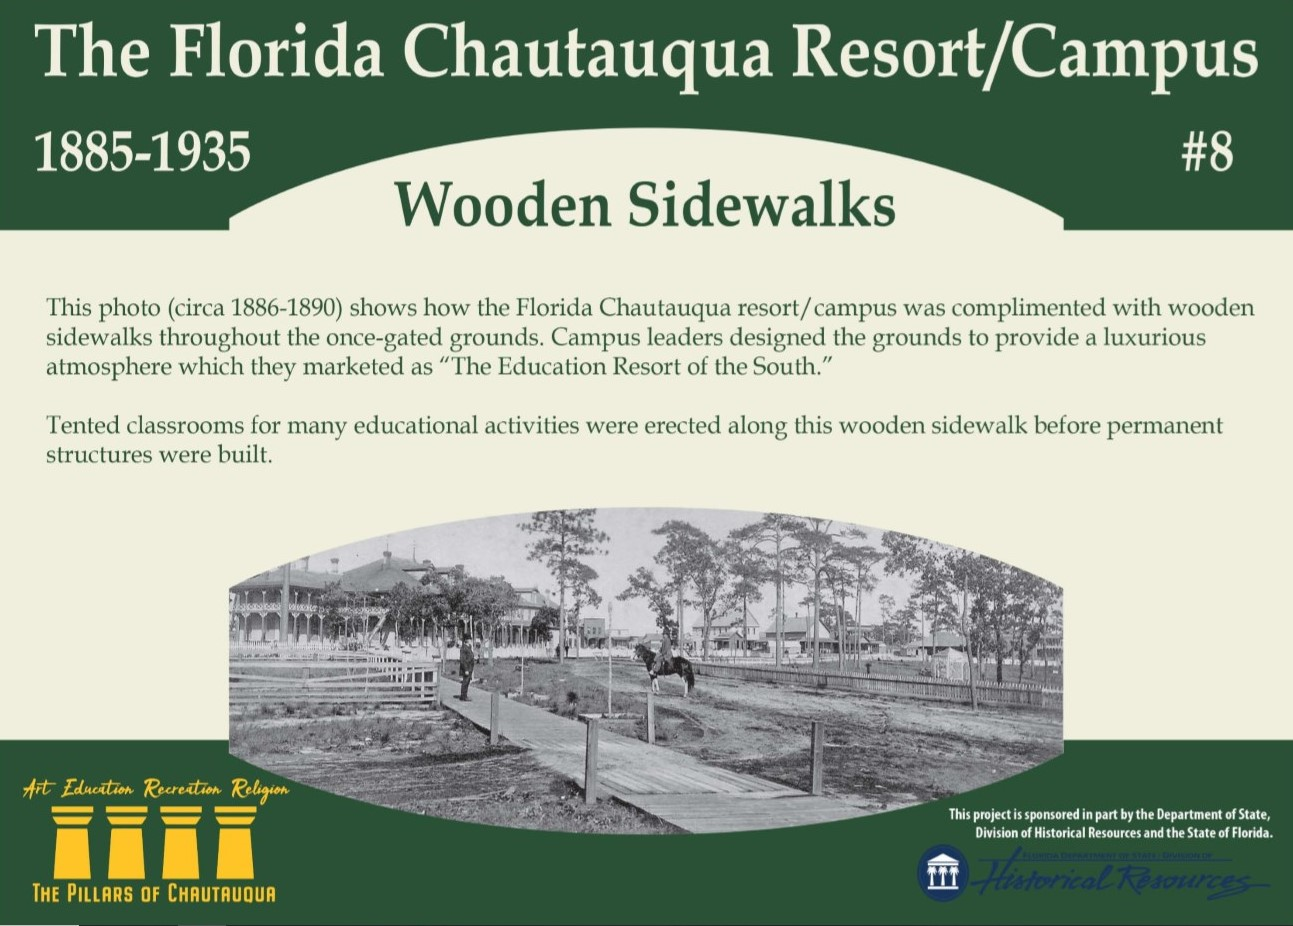 Sign about the history of wooden sidewalks in DeFuniak Springs, Florida